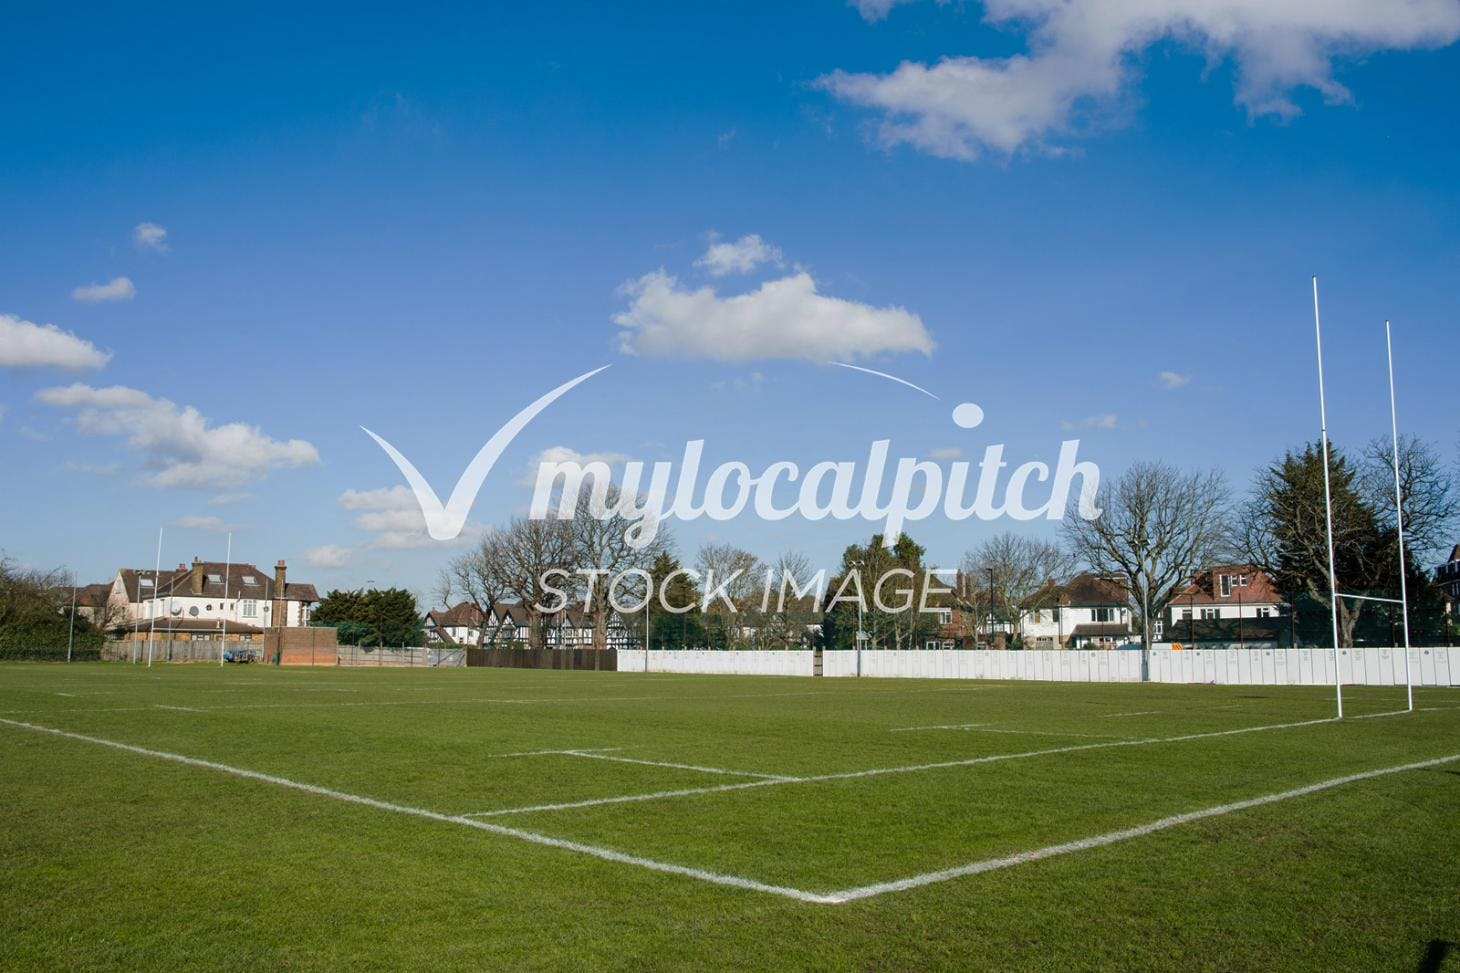 Hornets RFC Union | 3G Astroturf rugby pitch